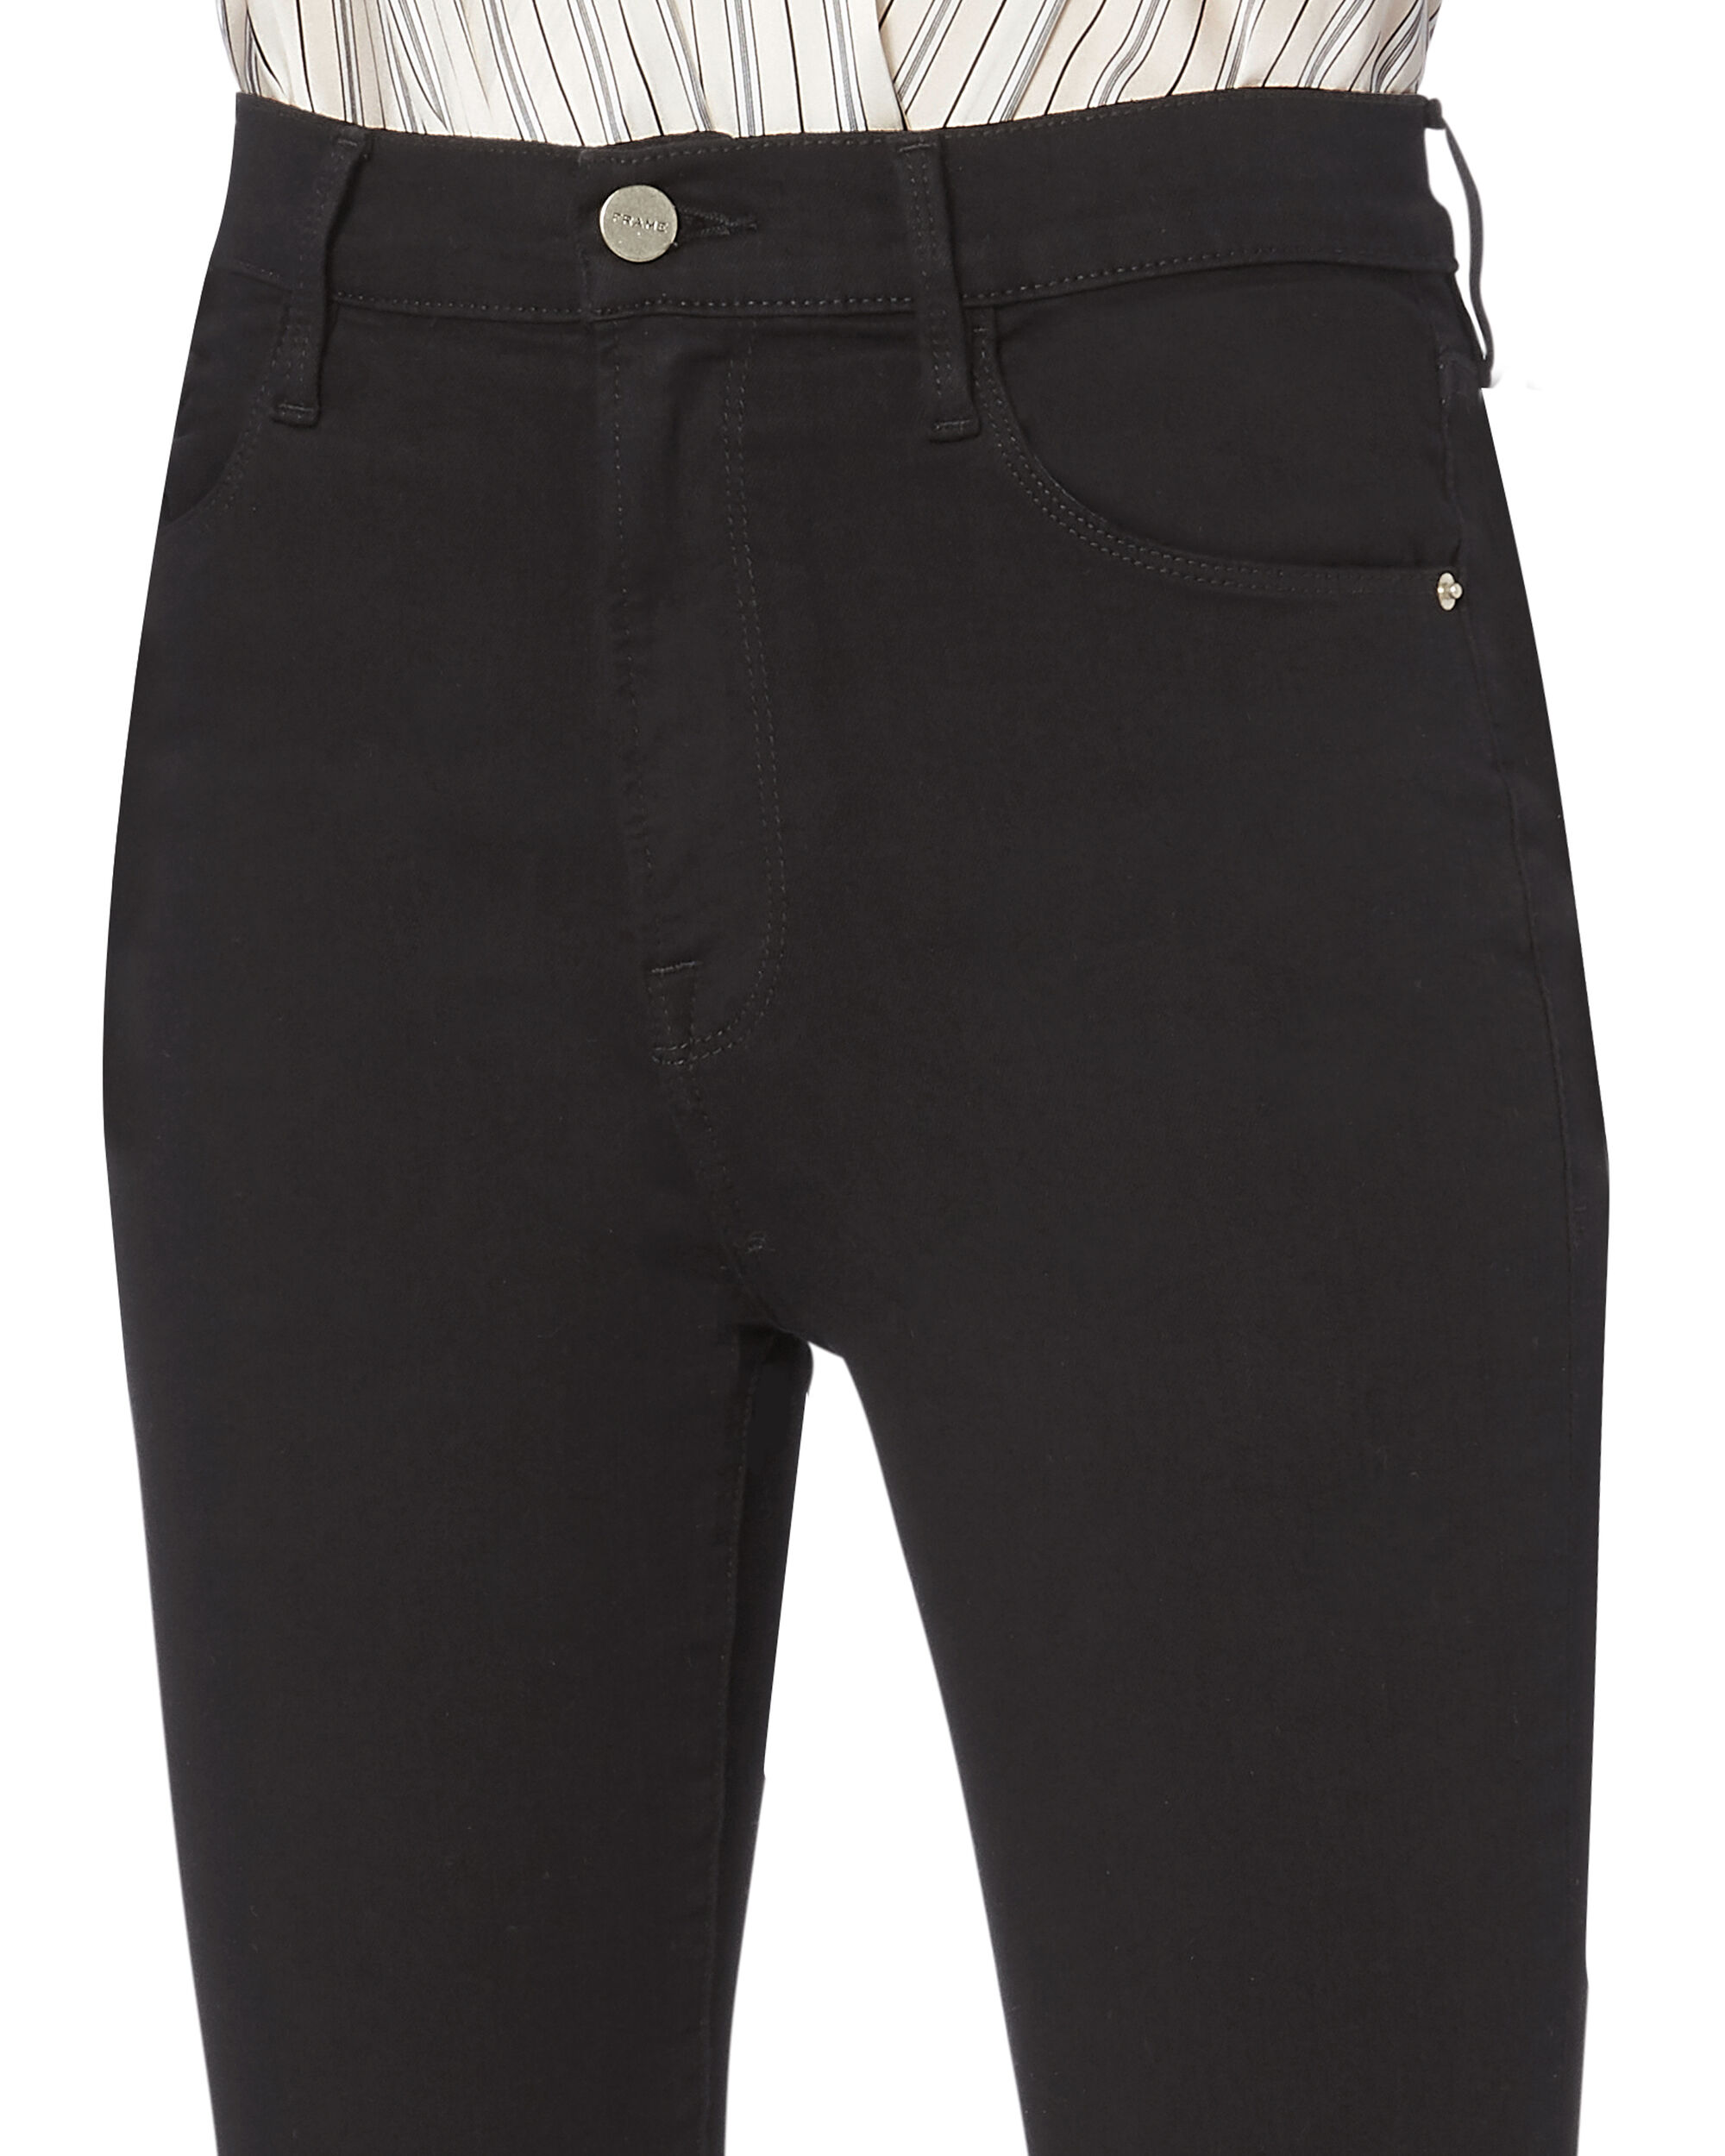 Ali High-Rise Black Cigarette Pants, BLACK, hi-res